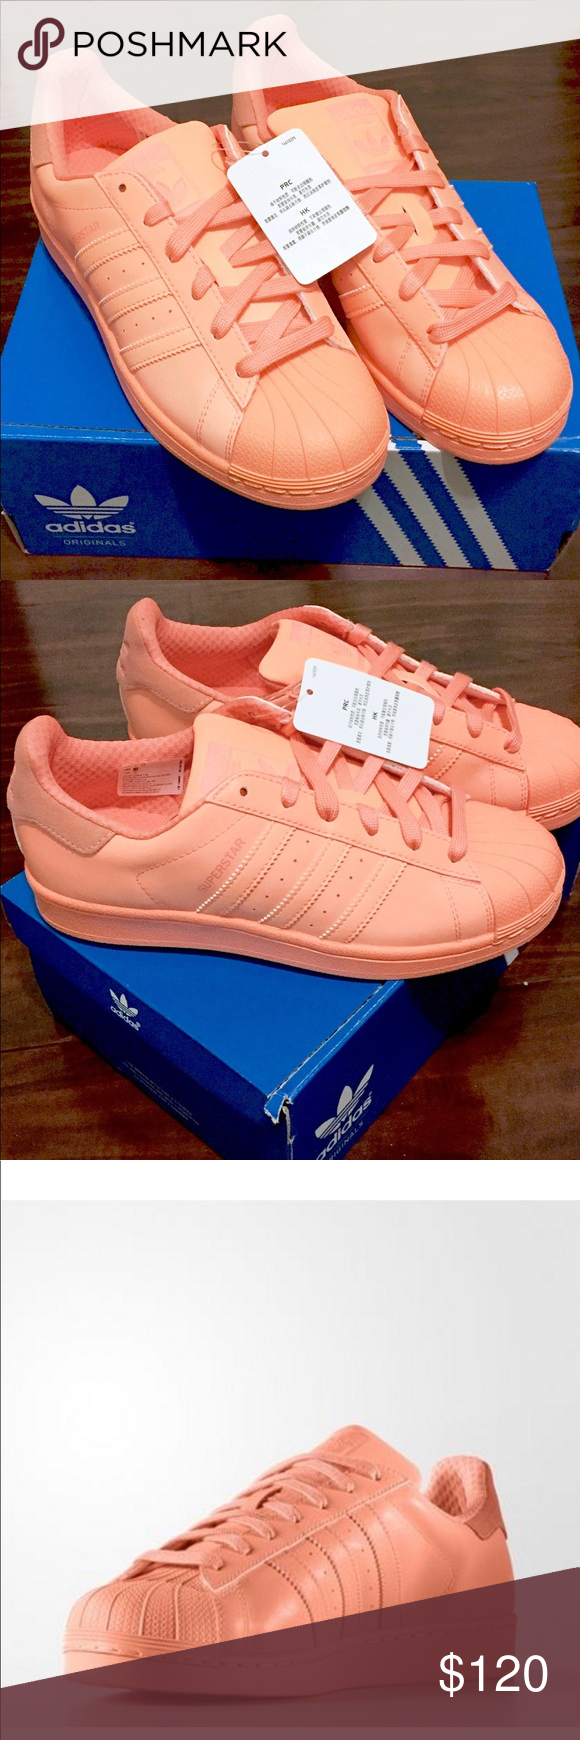 chaussures de sport 4f0c8 56381 Adidas Superstar Bright Mango Pre-Owned. Condition 9.5/10 ...